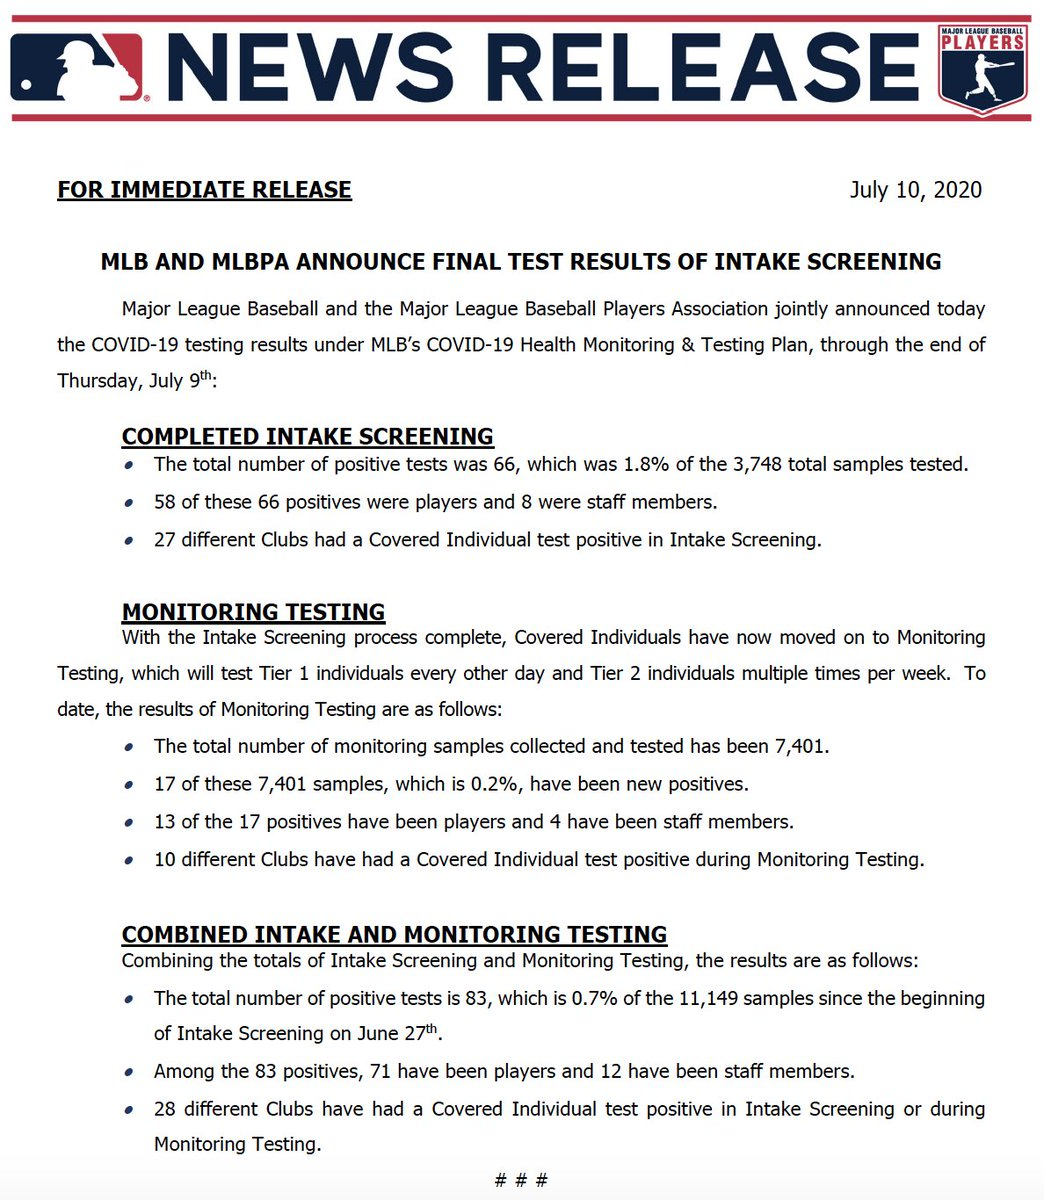 Final test results of MLB intake screening is complete.   If you combine intake and monitoring testing: 83 positives (0.7%) of 11,149 samples since testing began June 27th.   71 have been players. https://t.co/4svqIq4M3h